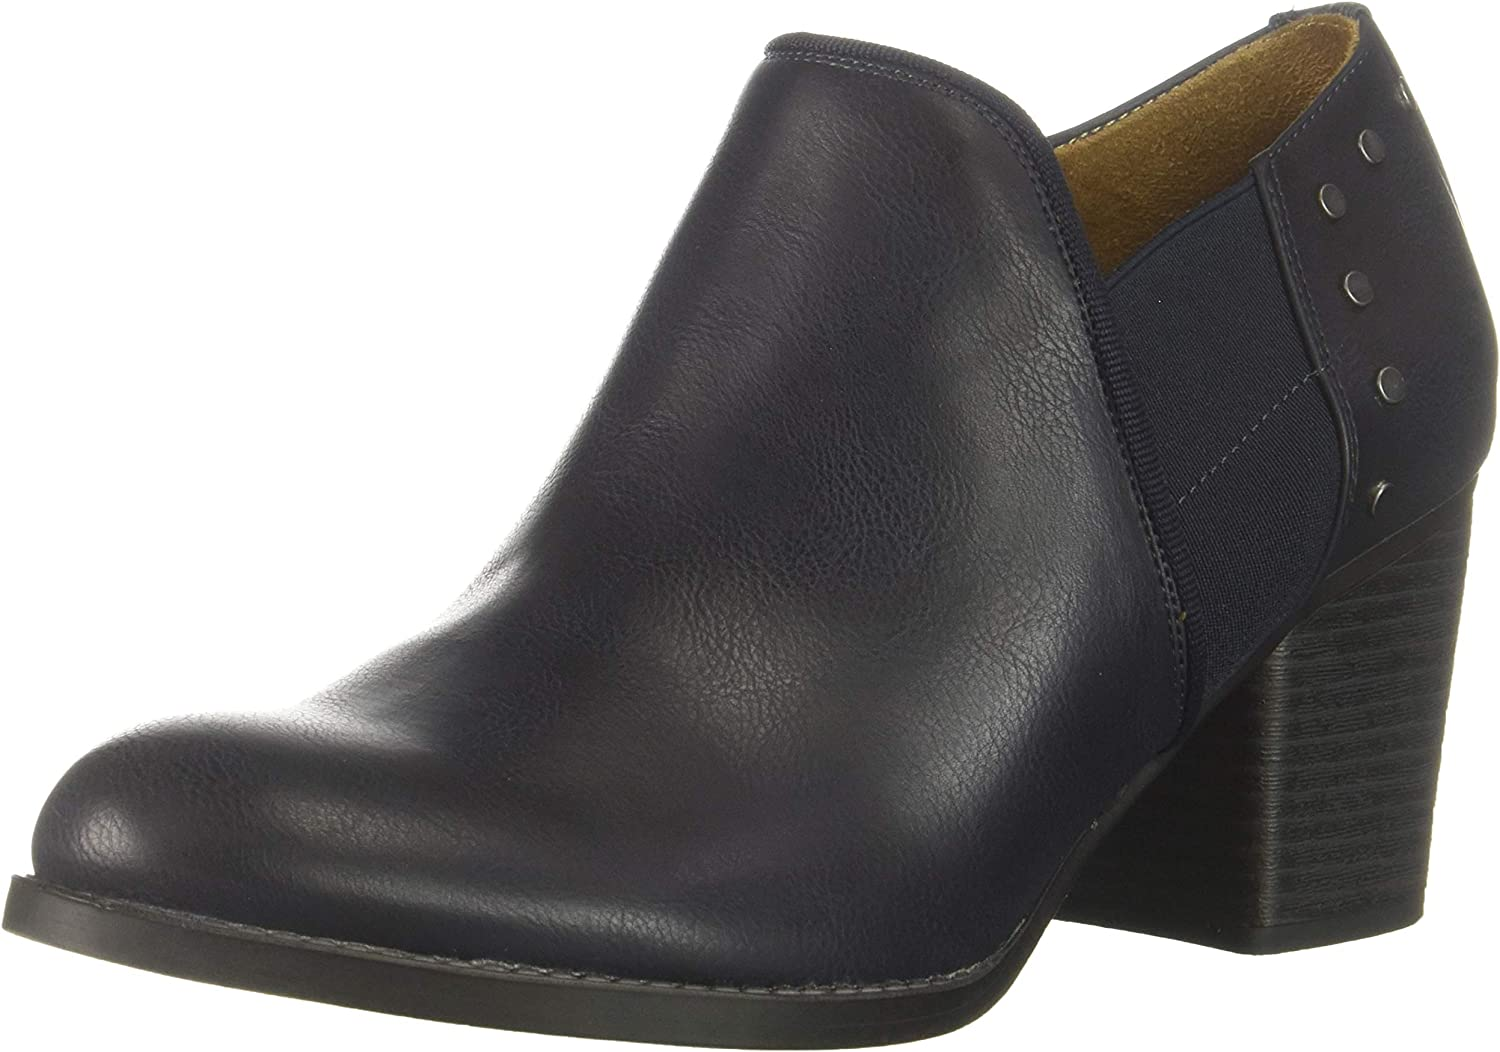 SOUL Naturalizer Womens Tristin Ankle Boot